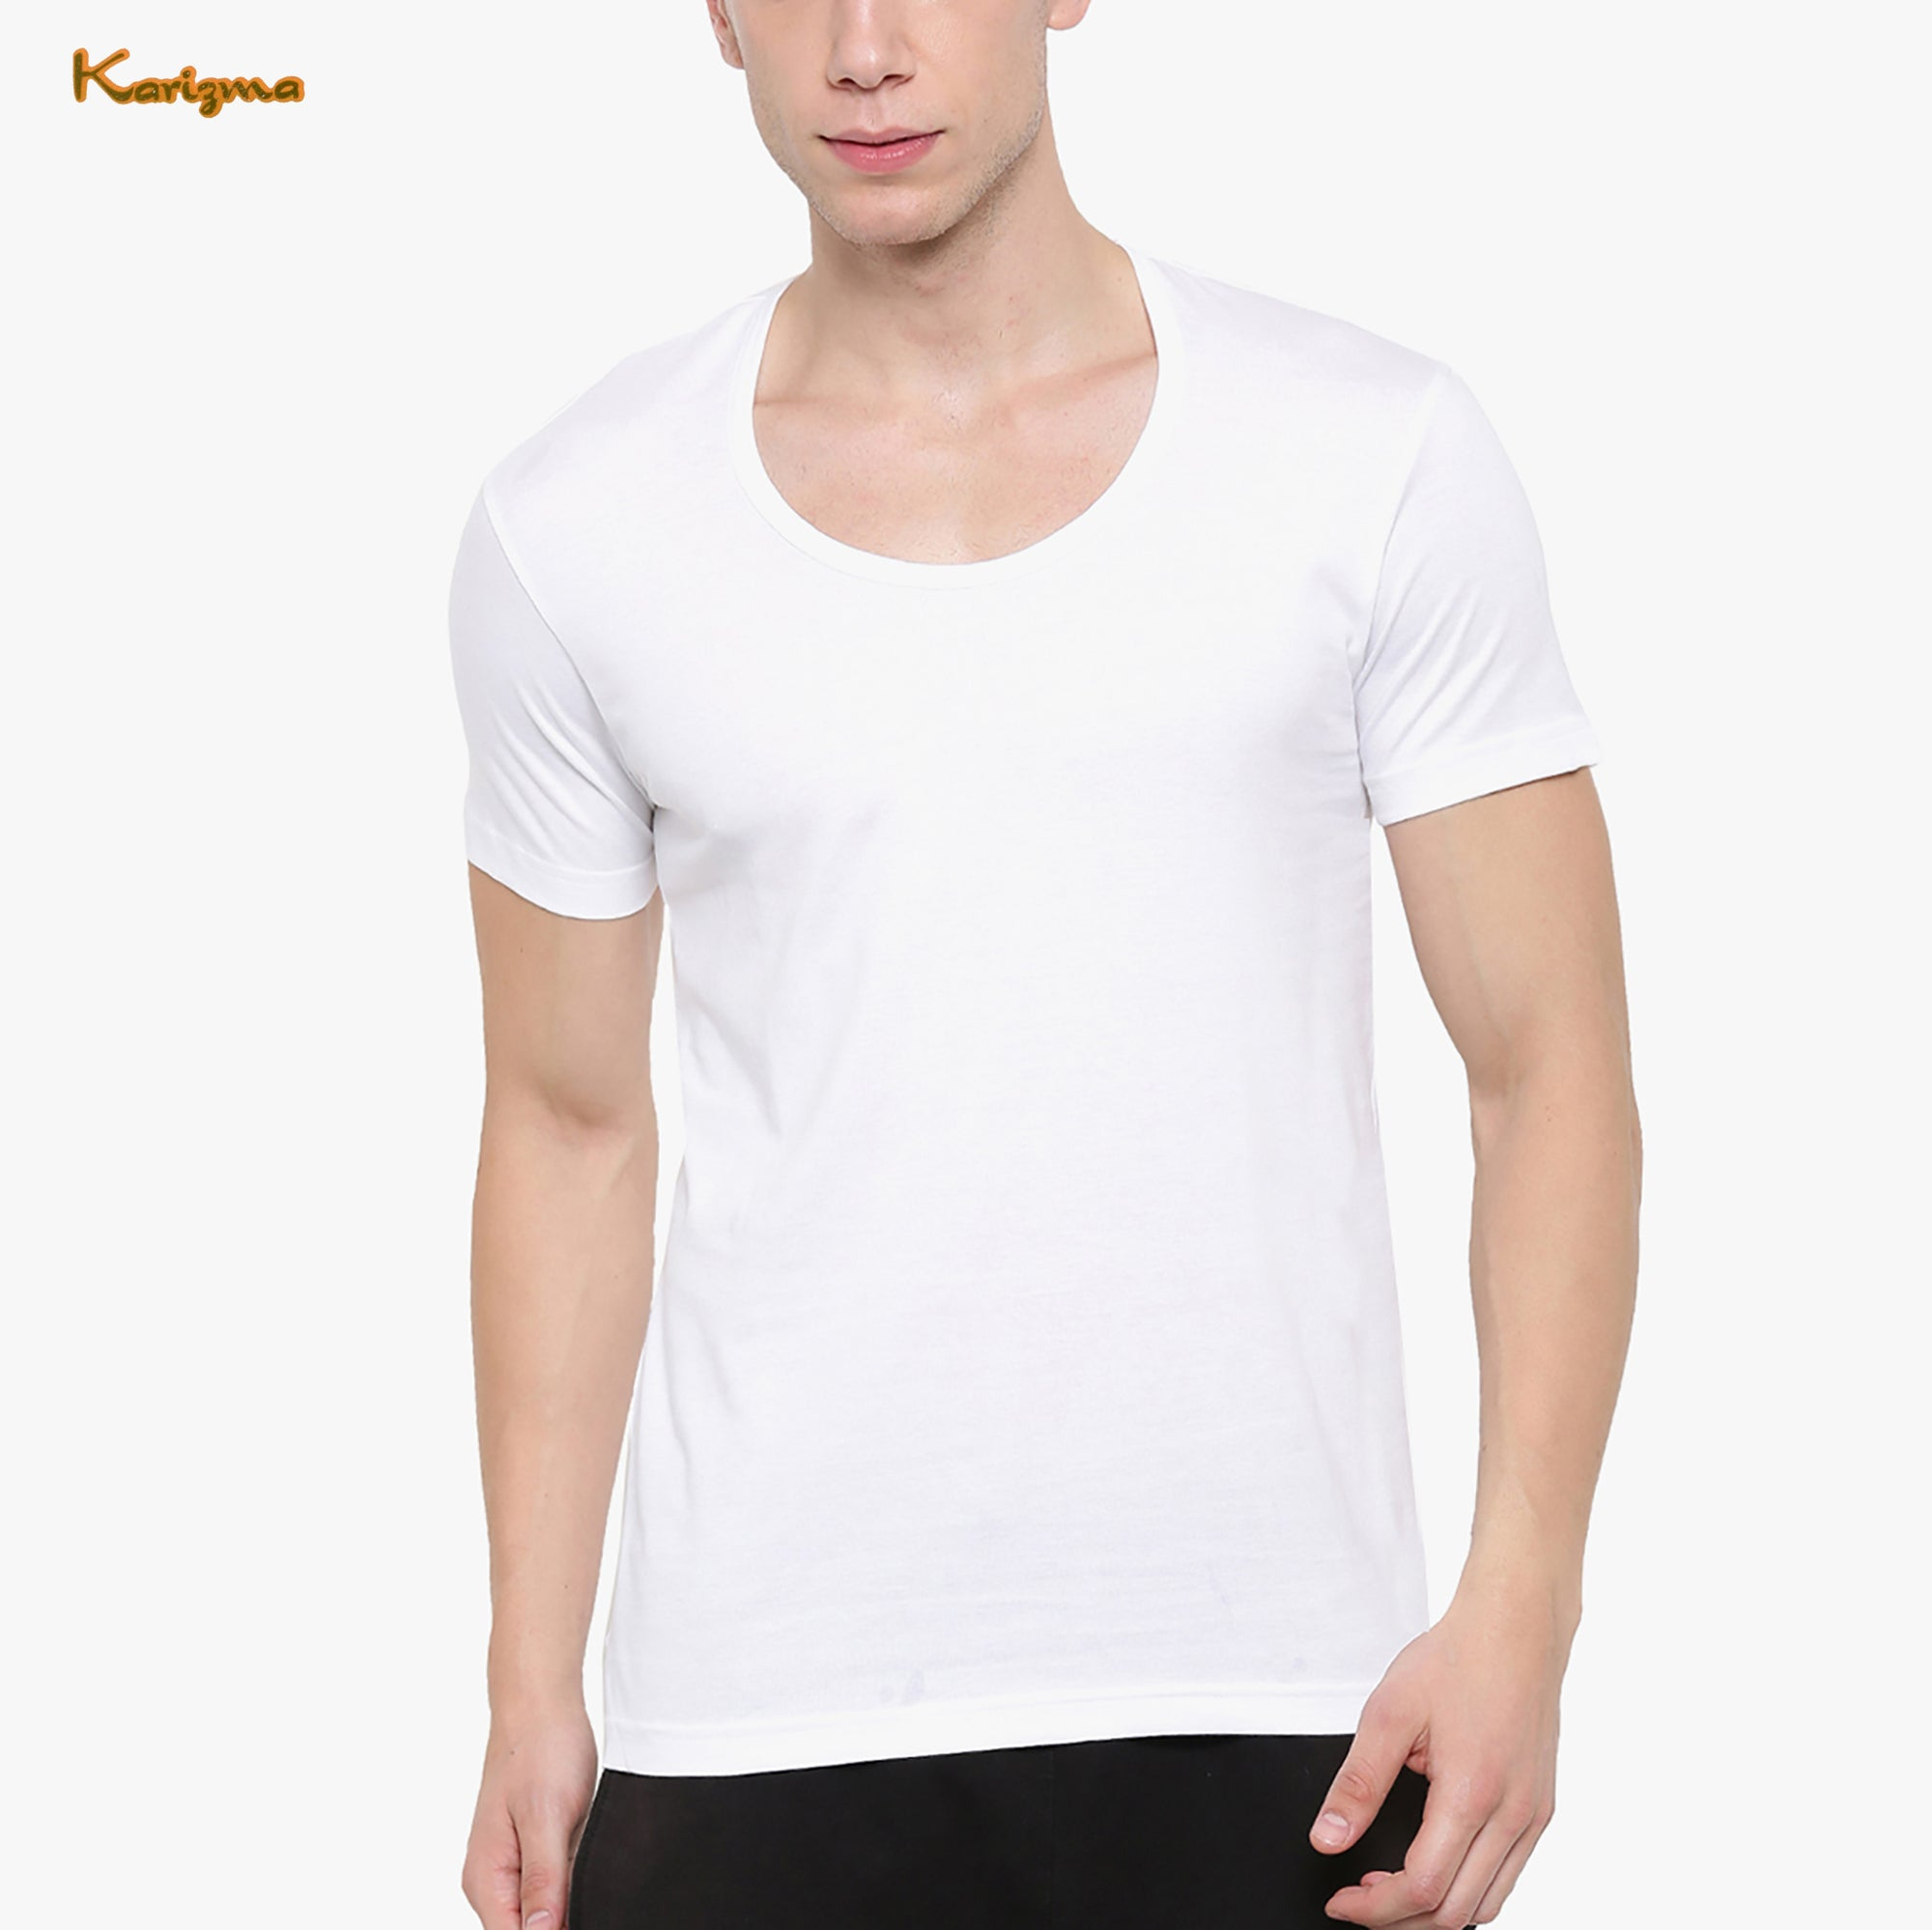 Karizma Inner-Wear Short Sleeve Vest For Men-BE4331